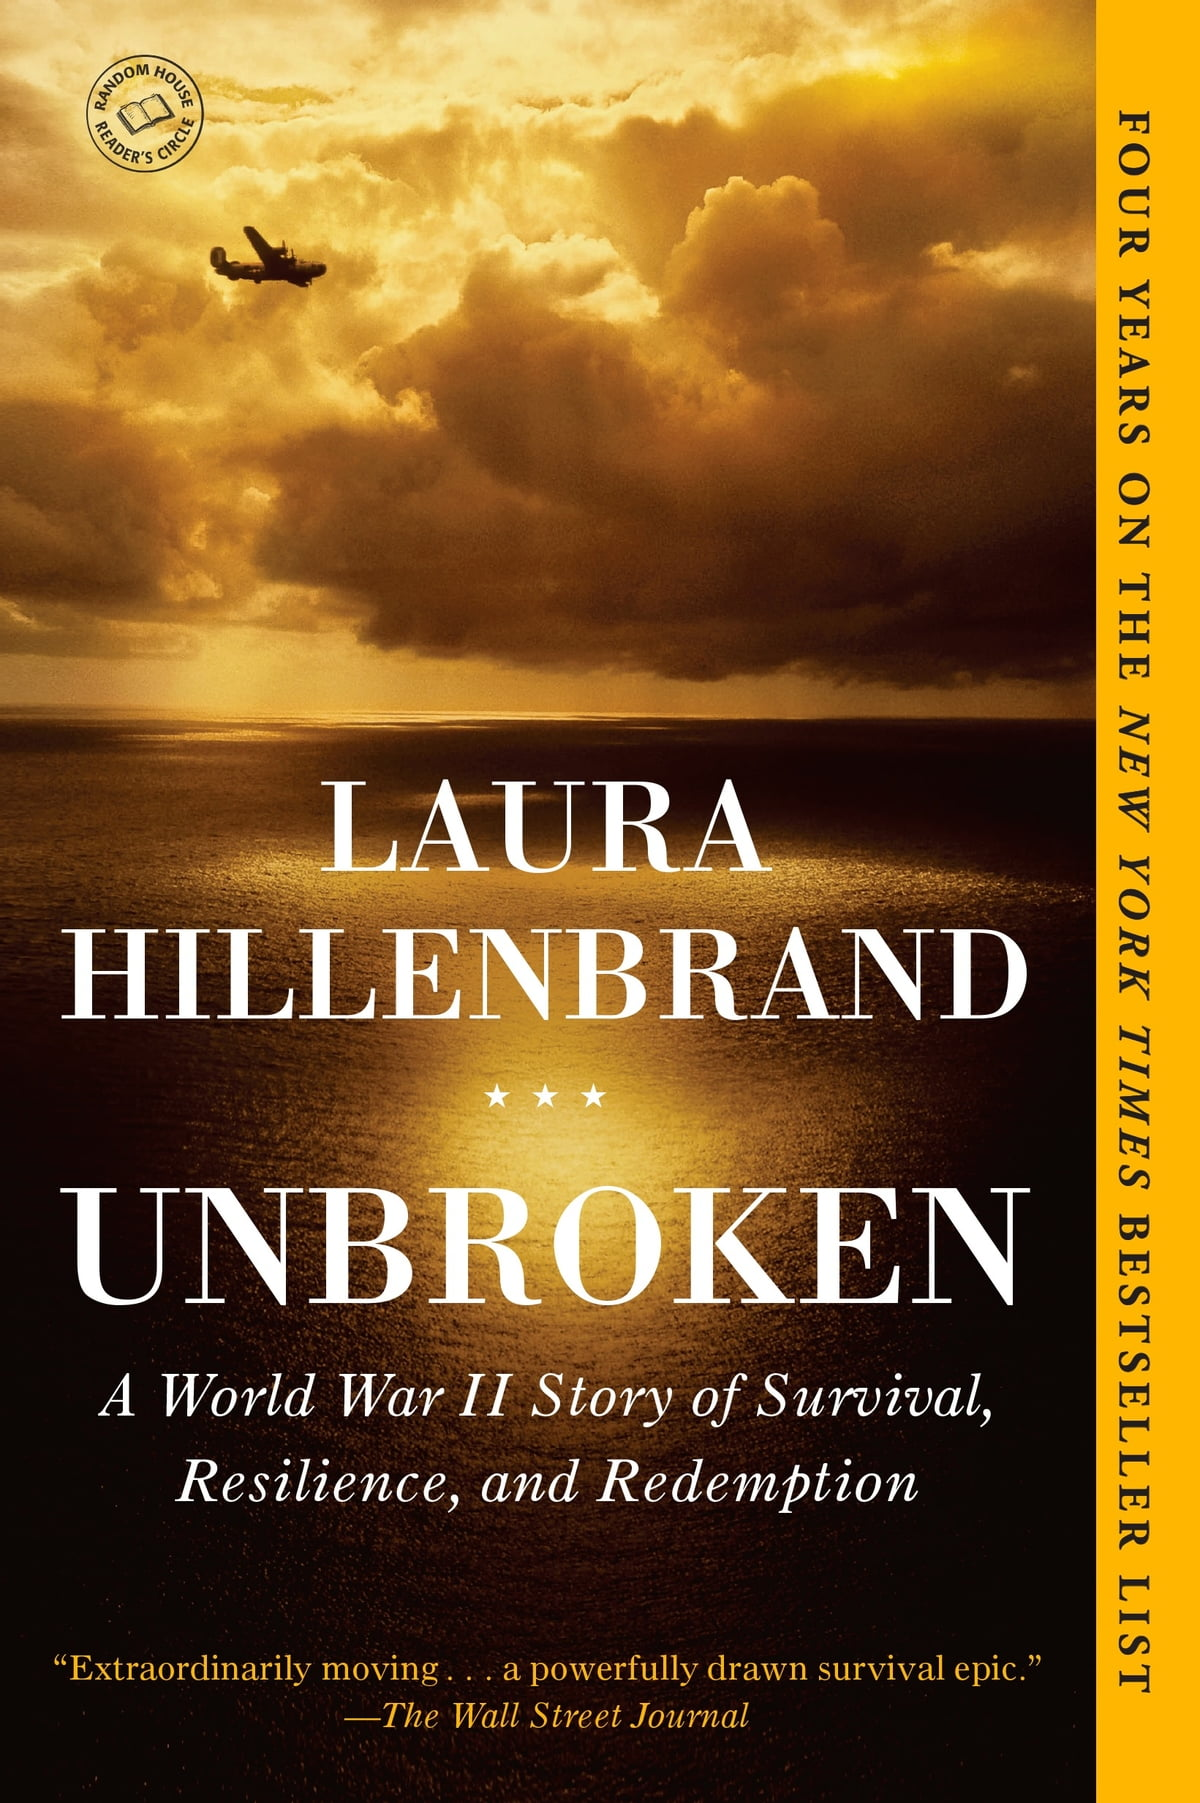 Unbroken: A World War Ii Story Of Survival, Resilience, And Redemption Ebook  By Laura Hillenbrand  9780679603757  Rakuten Kobo